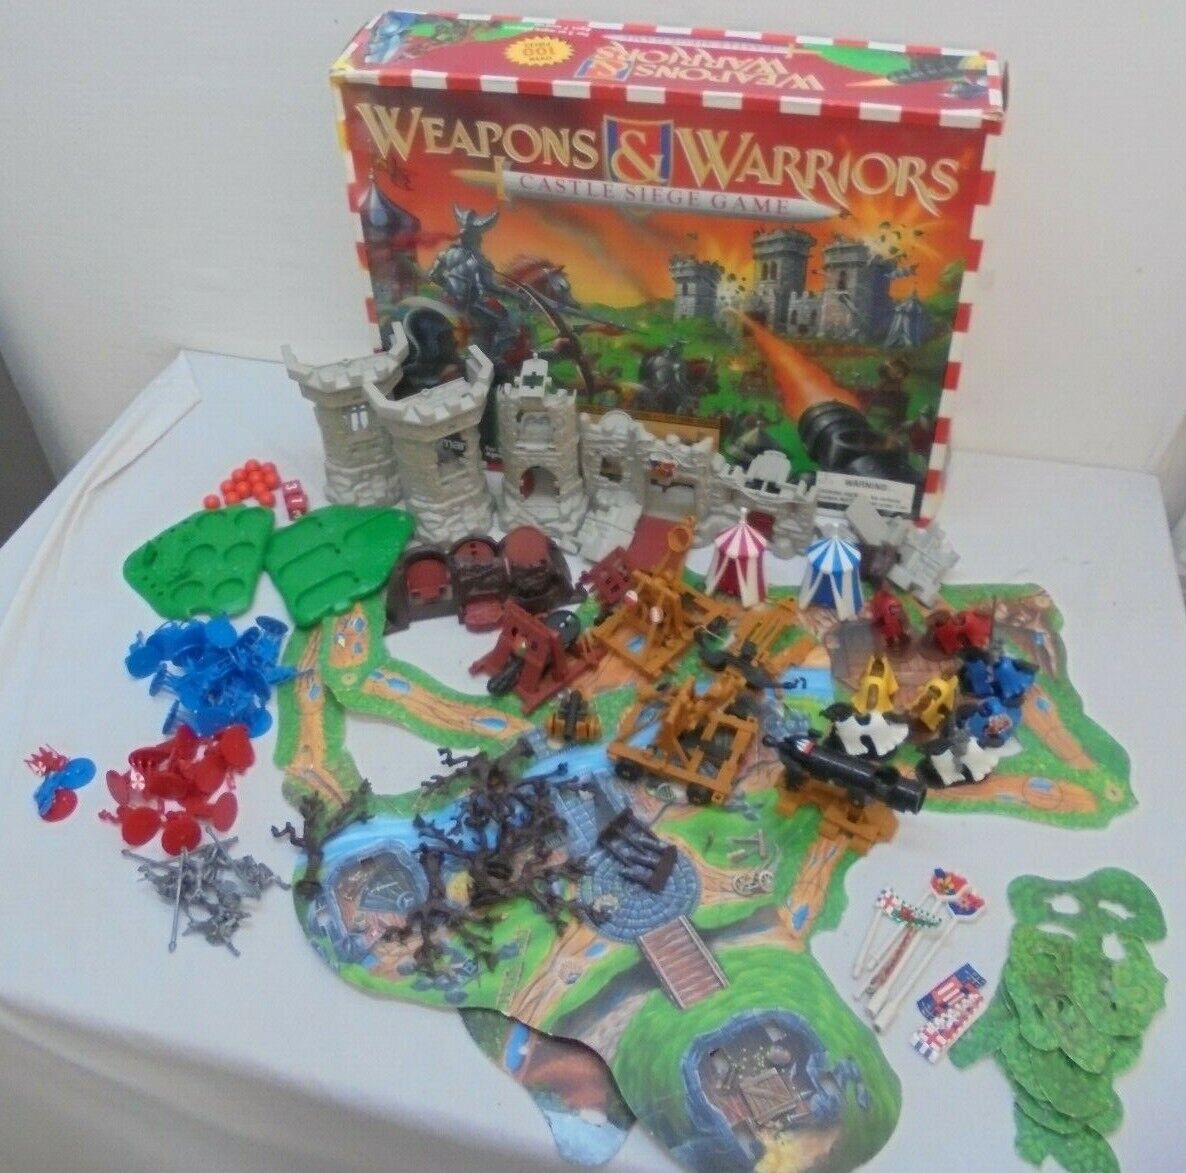 Weapons & and Warriors Castle Combat Set Pressman Board Game 1995 Incomplete